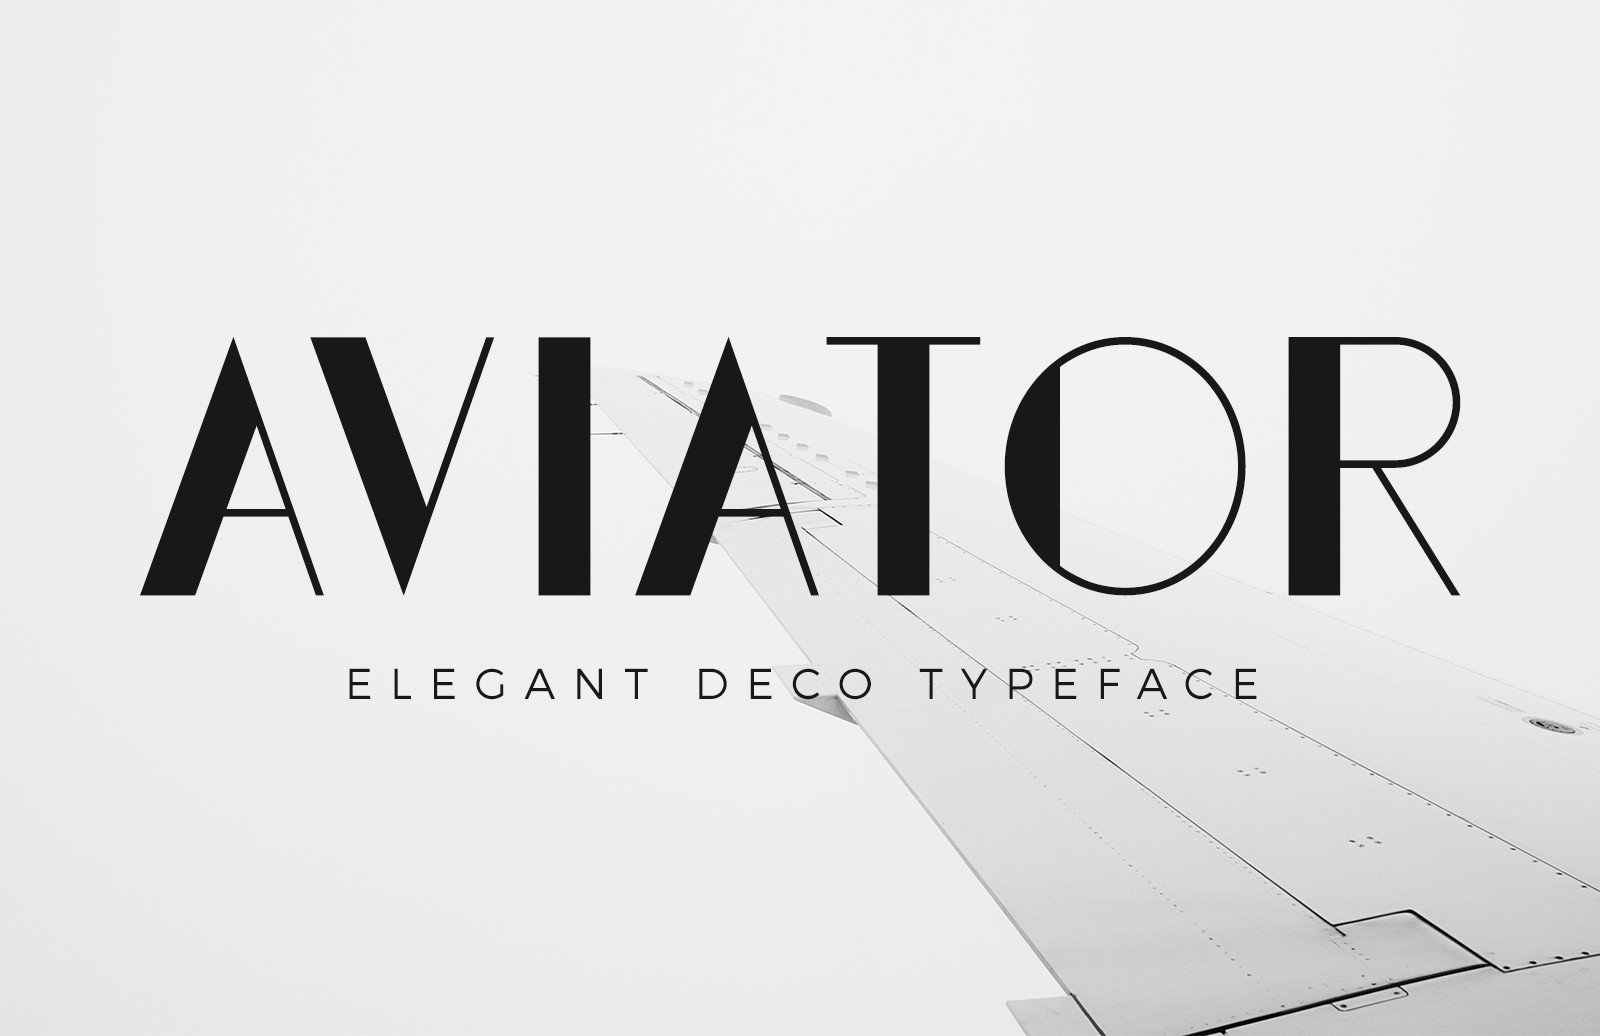 Aviator Elegant Deco Font Preview 1